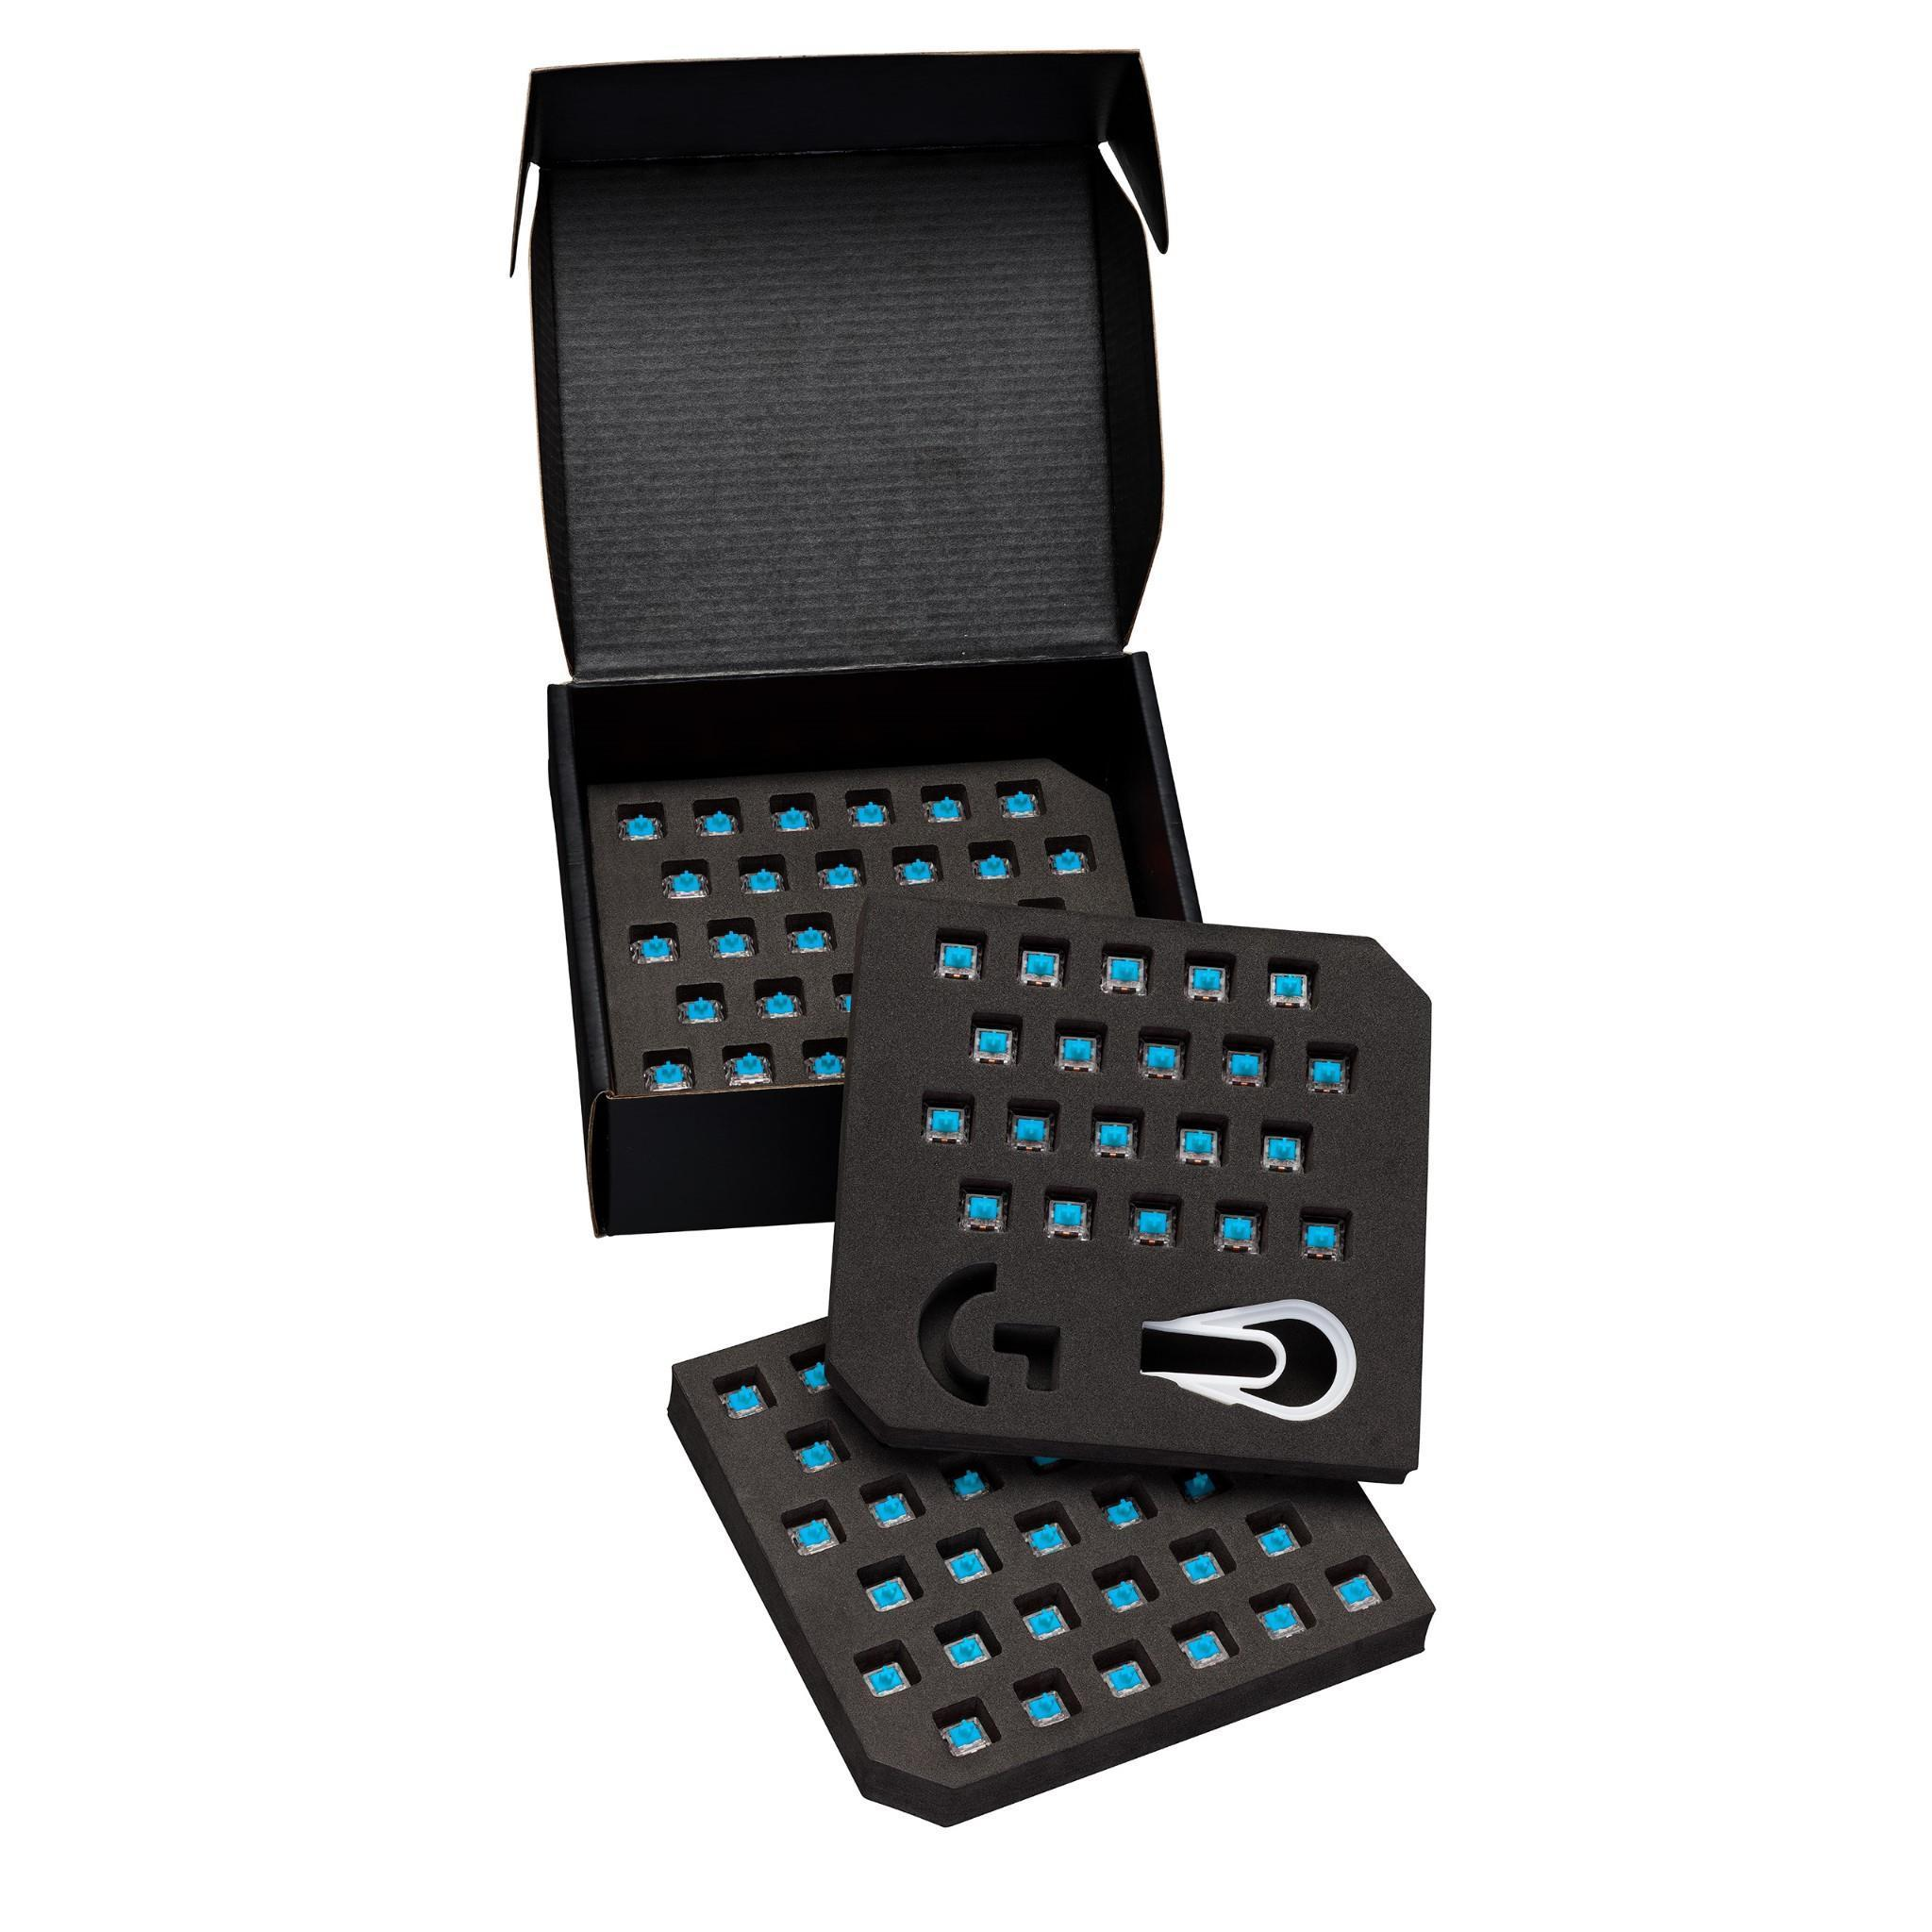 Logitech G Clicky Switches for PRO X Keyboard